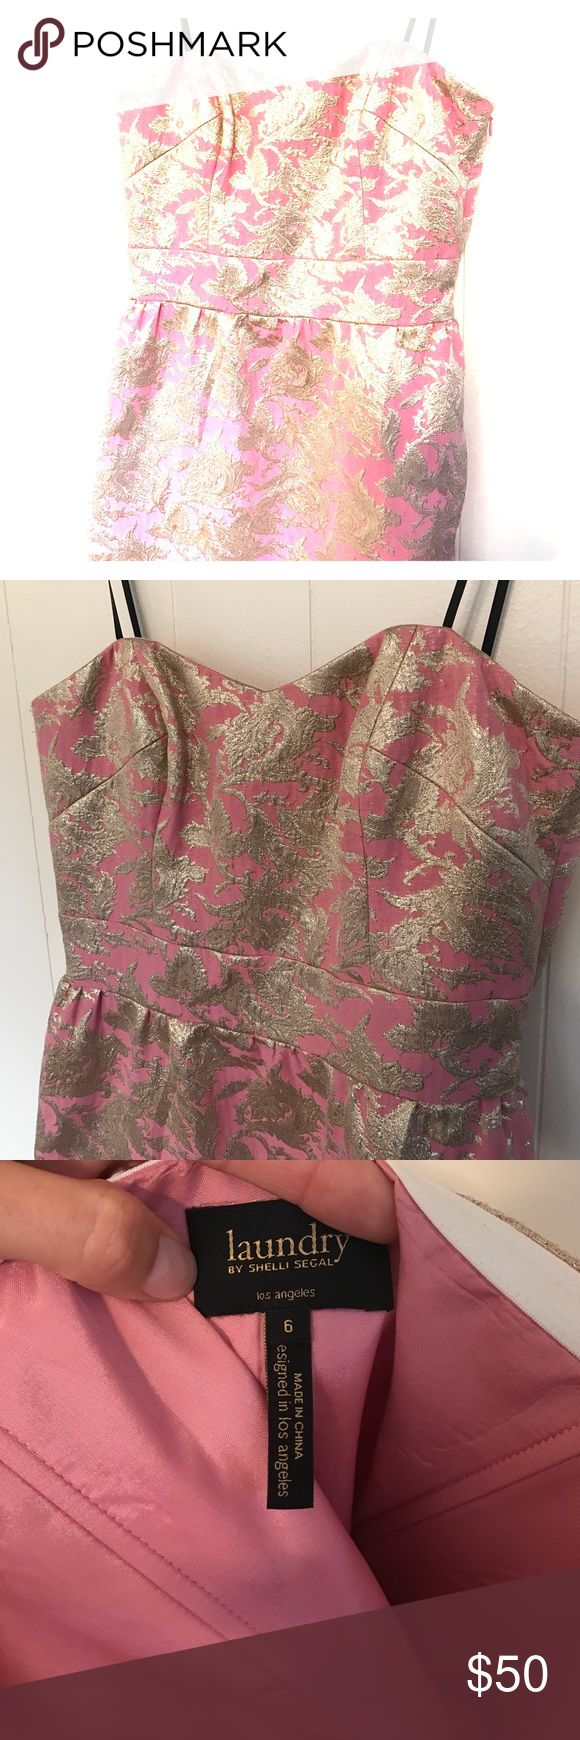 Strapless dress Laundry by Shelli Segal Strapless dress, Laundry by Shelli Segal. Gorgeous gold pattern on pink background. Excellent condition. Perfect for a party or wedding. Laundry by Shelli Segal Dresses Strapless